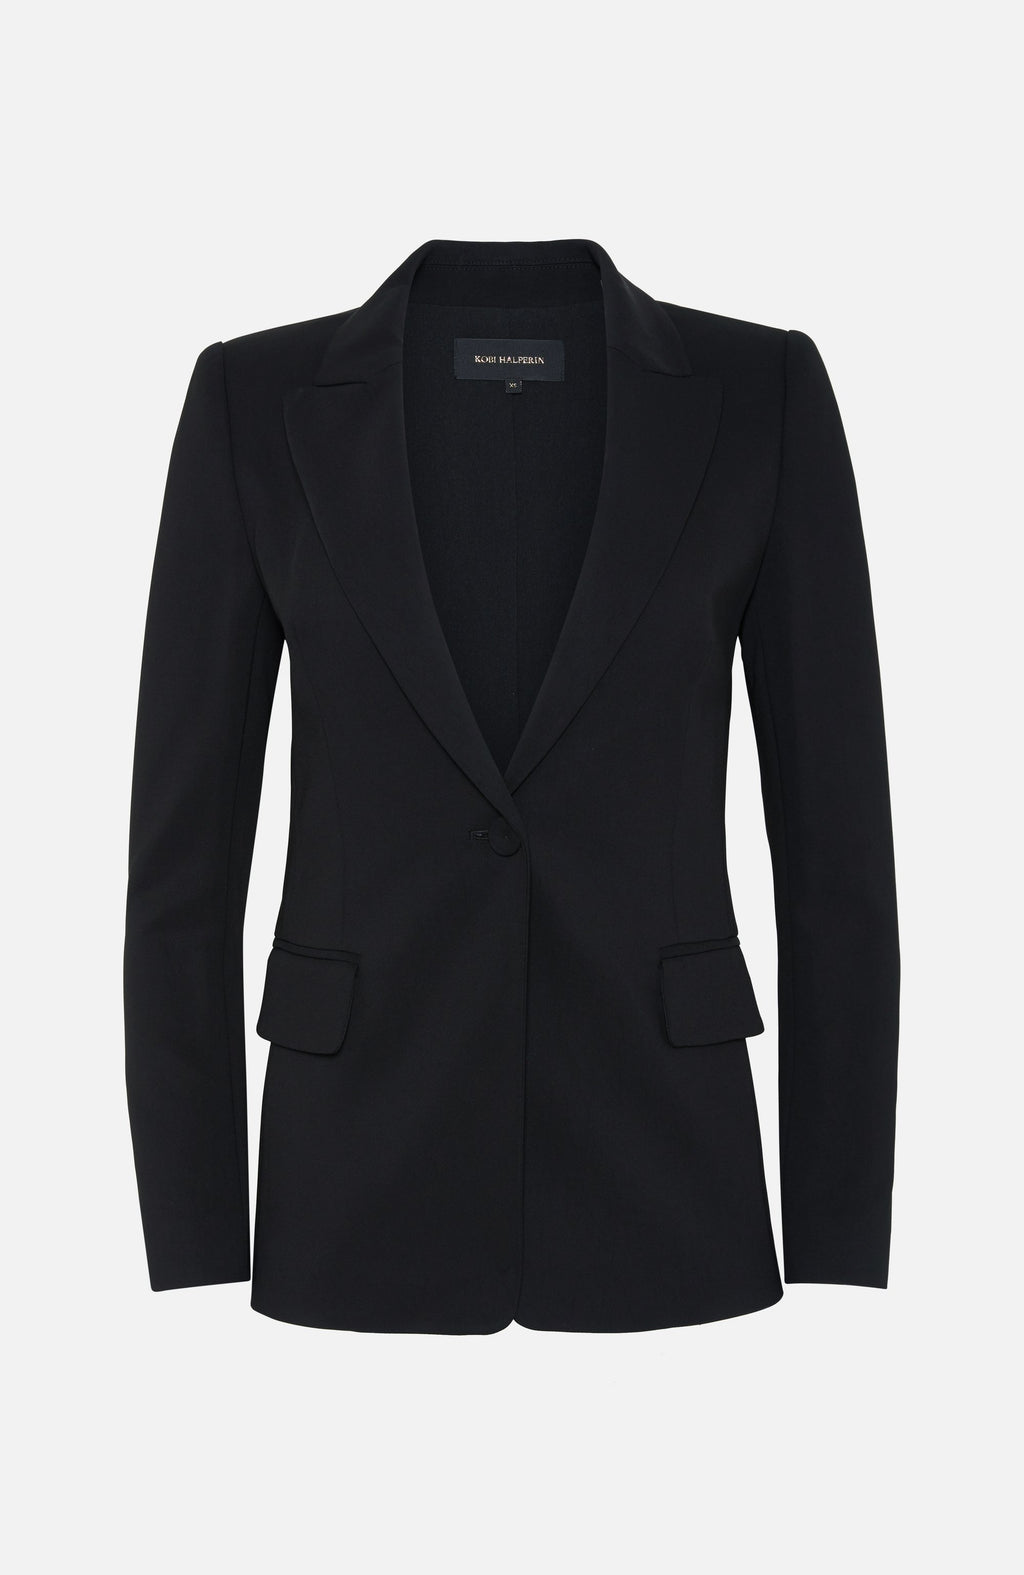 Kobi Halperin Joelle Tailored Blazer